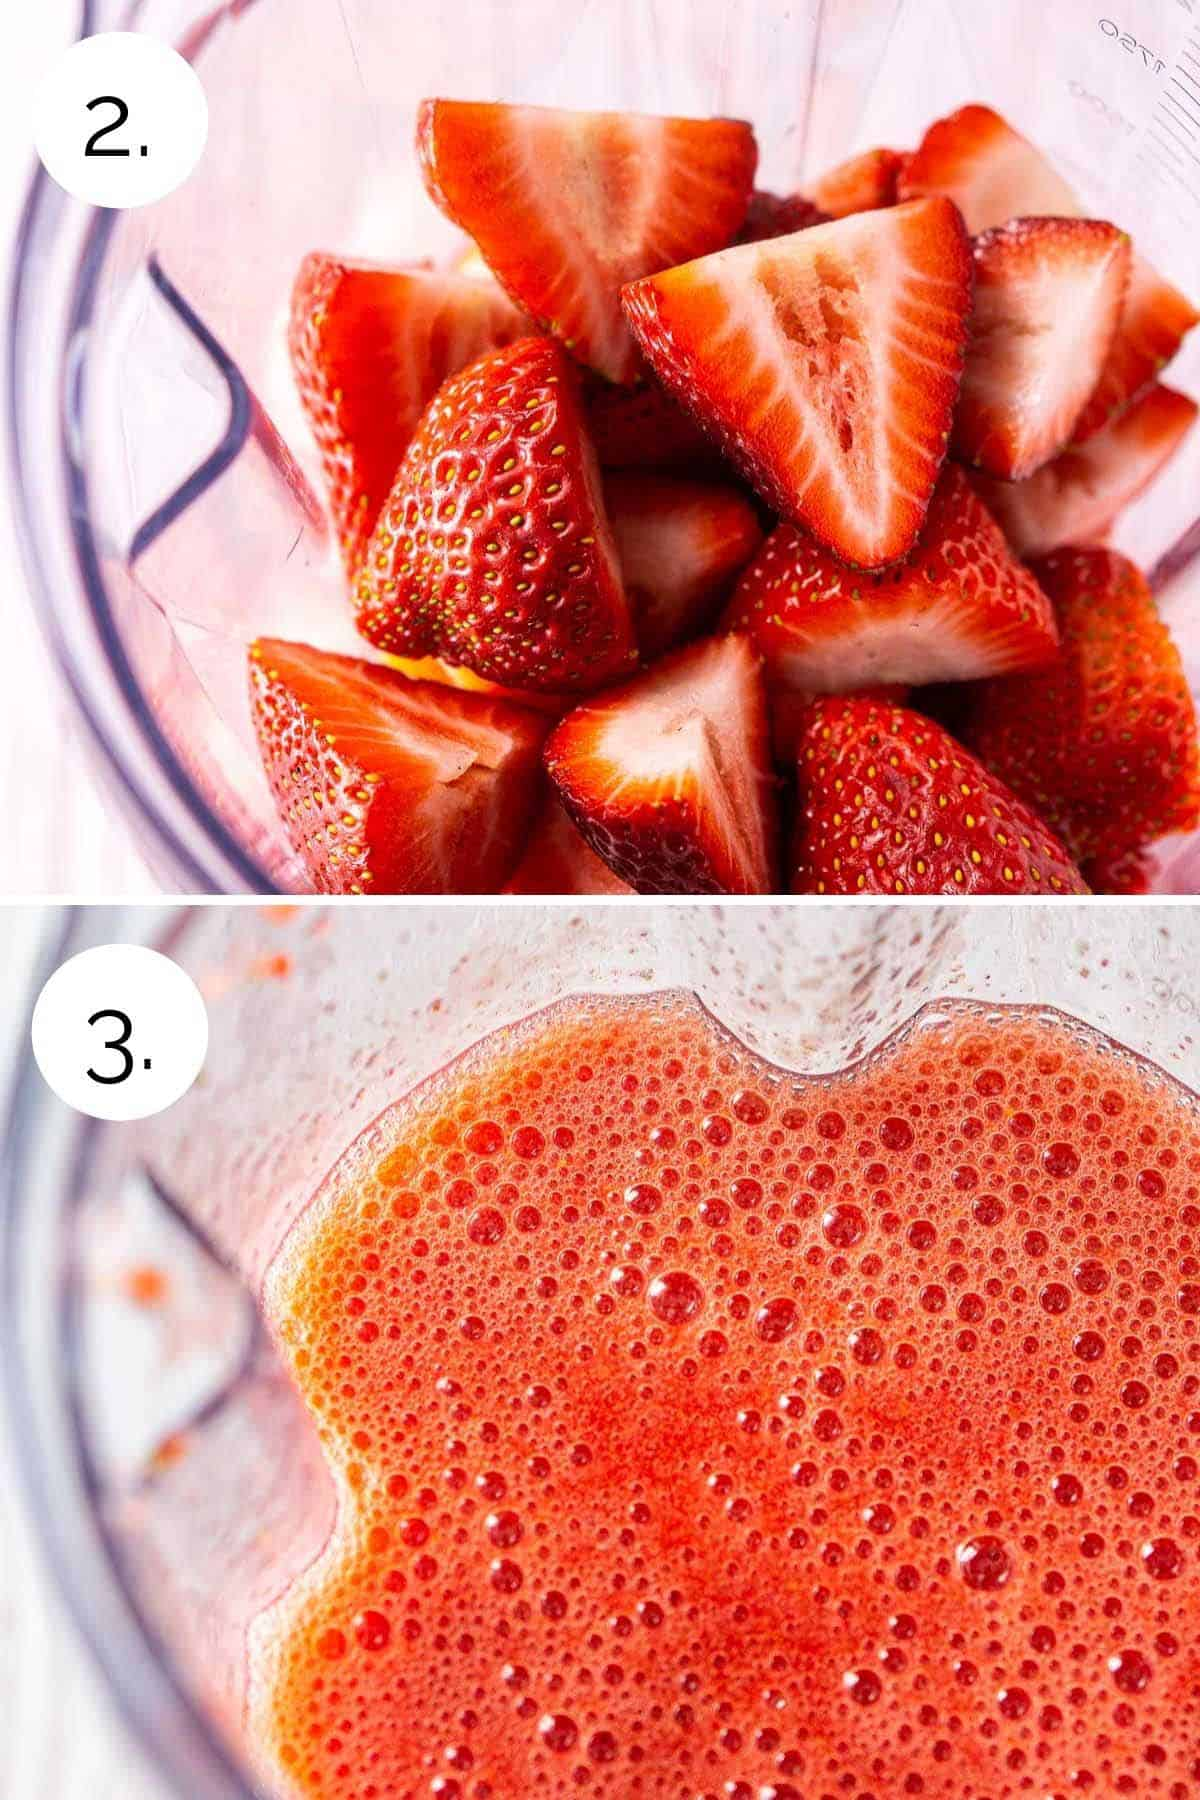 A collage showing the process of blending the strawberries until smooth.